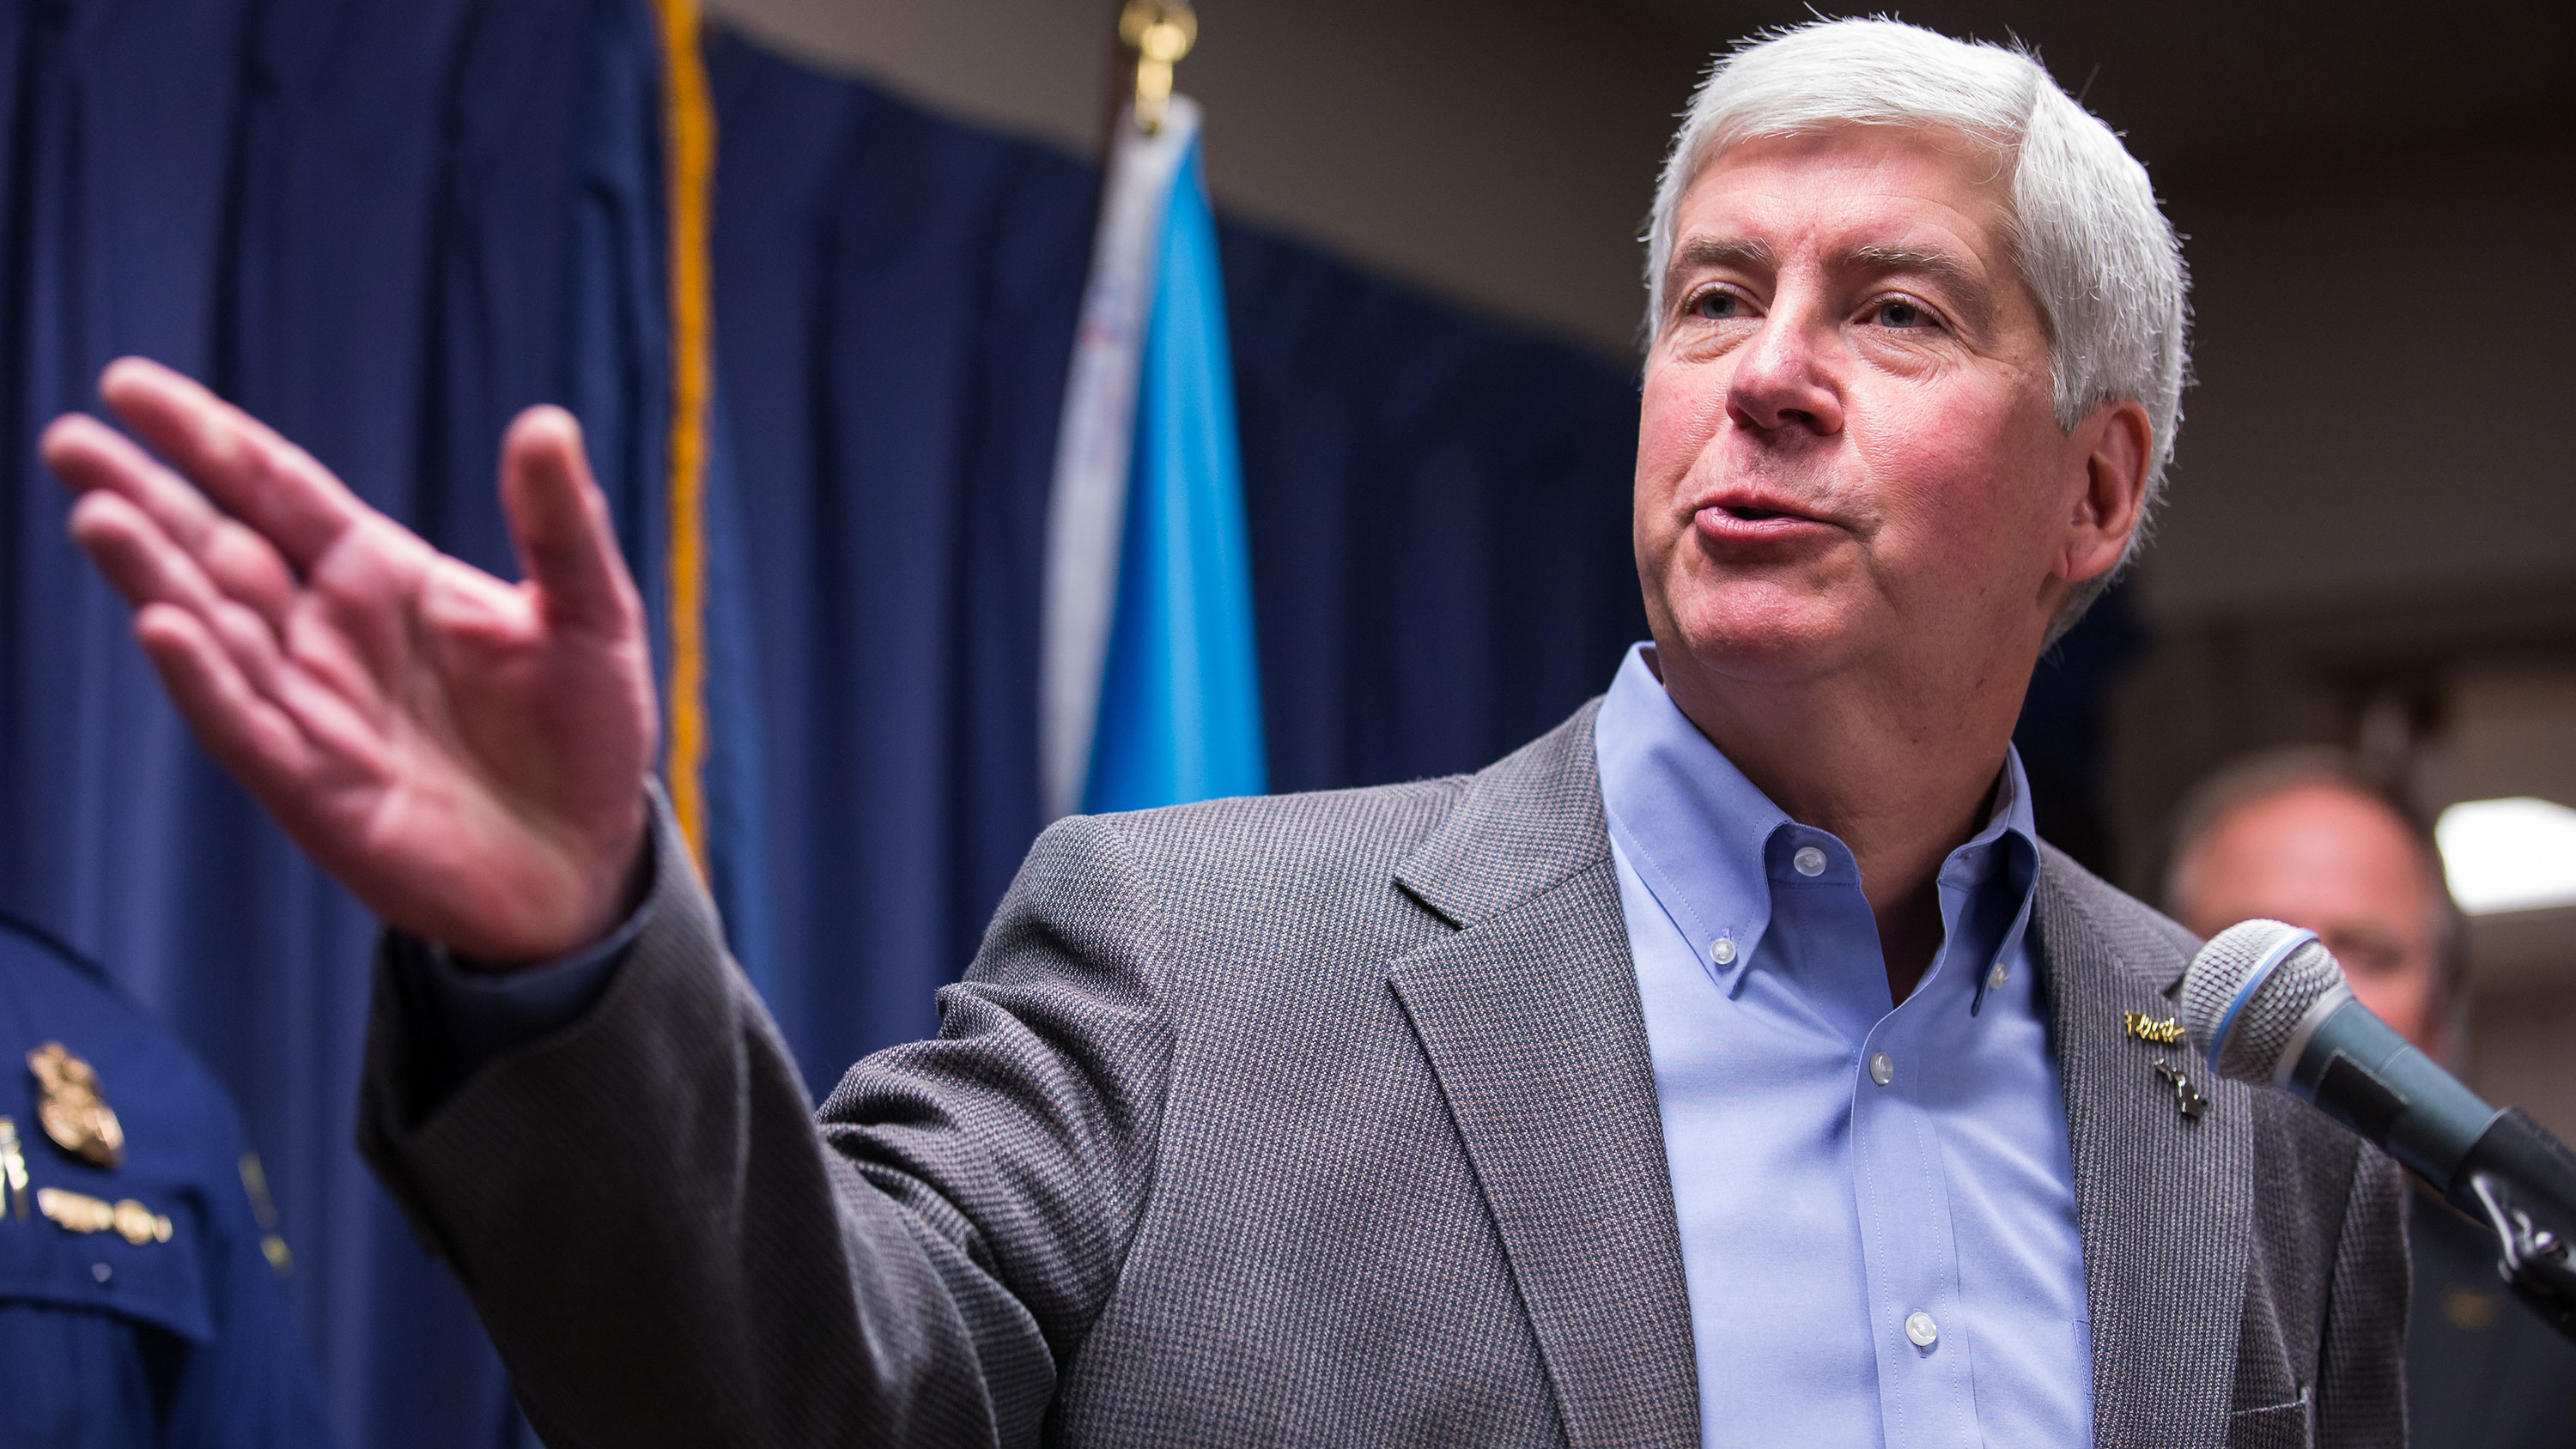 Ex-Michigan Gov. Rick Snyder charged with willful neglect of duty related to Flint water crisis